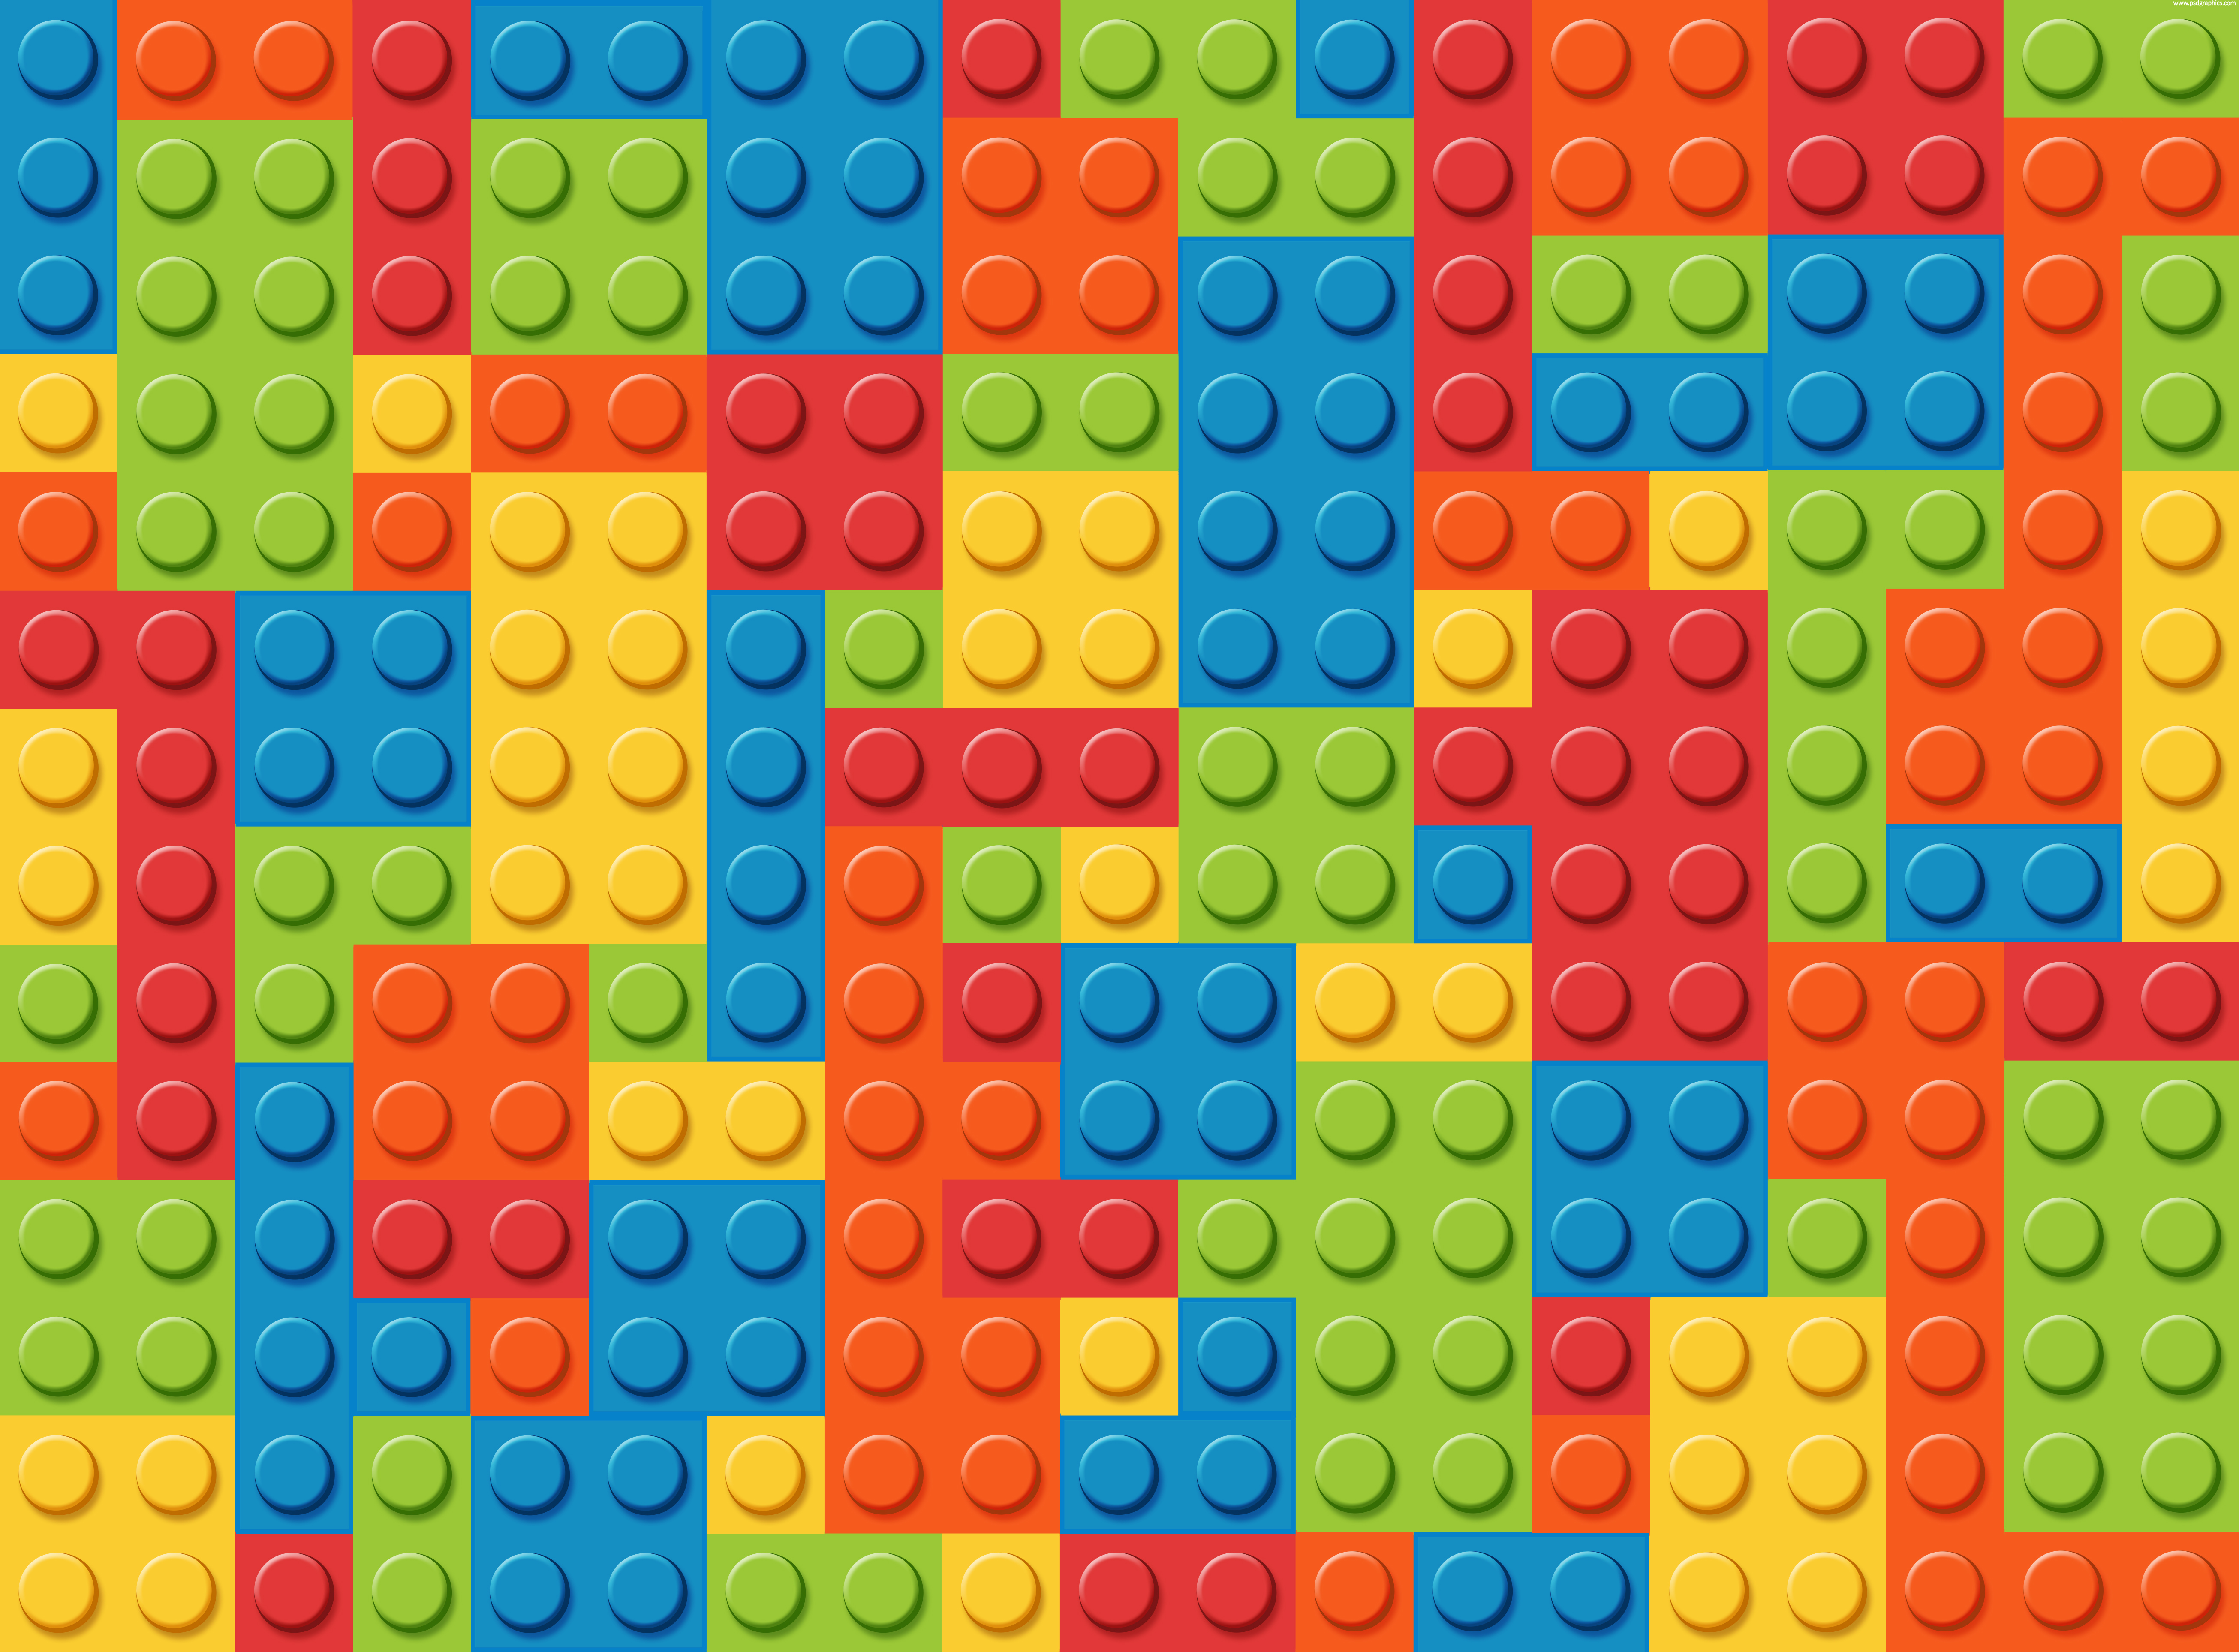 lego bricks pattern psdgraphics